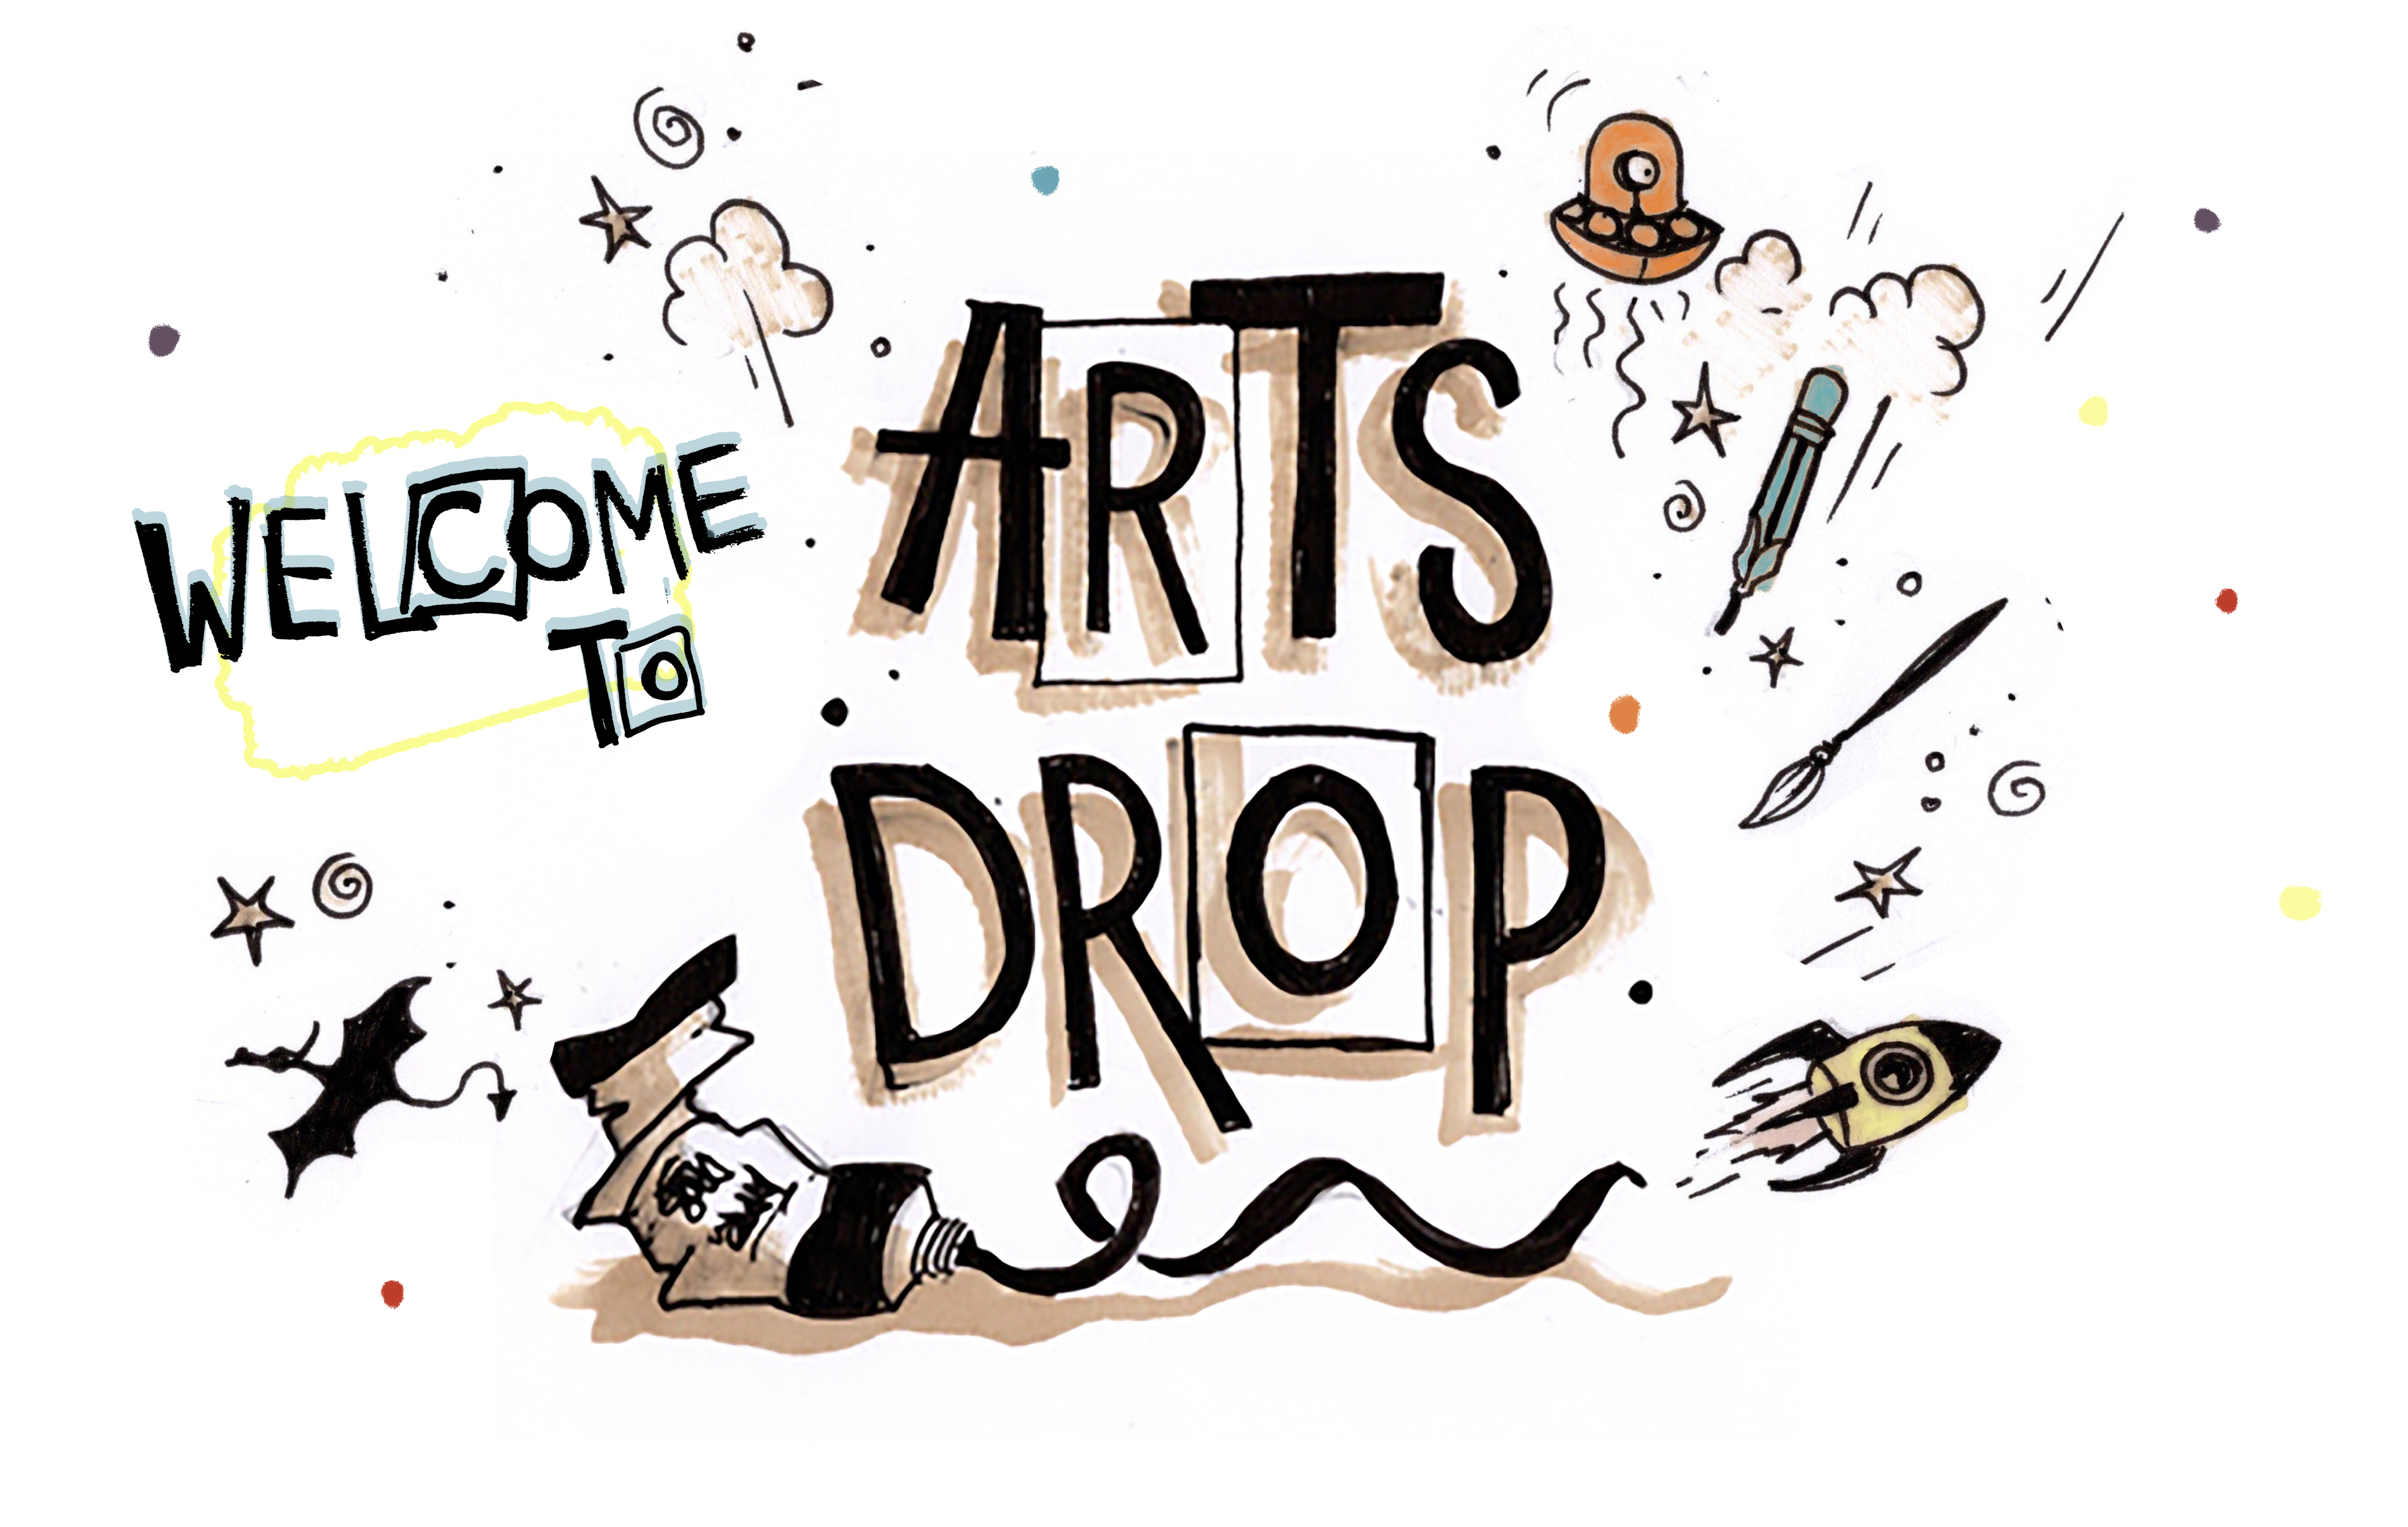 Welcome to Arts Drop graphic